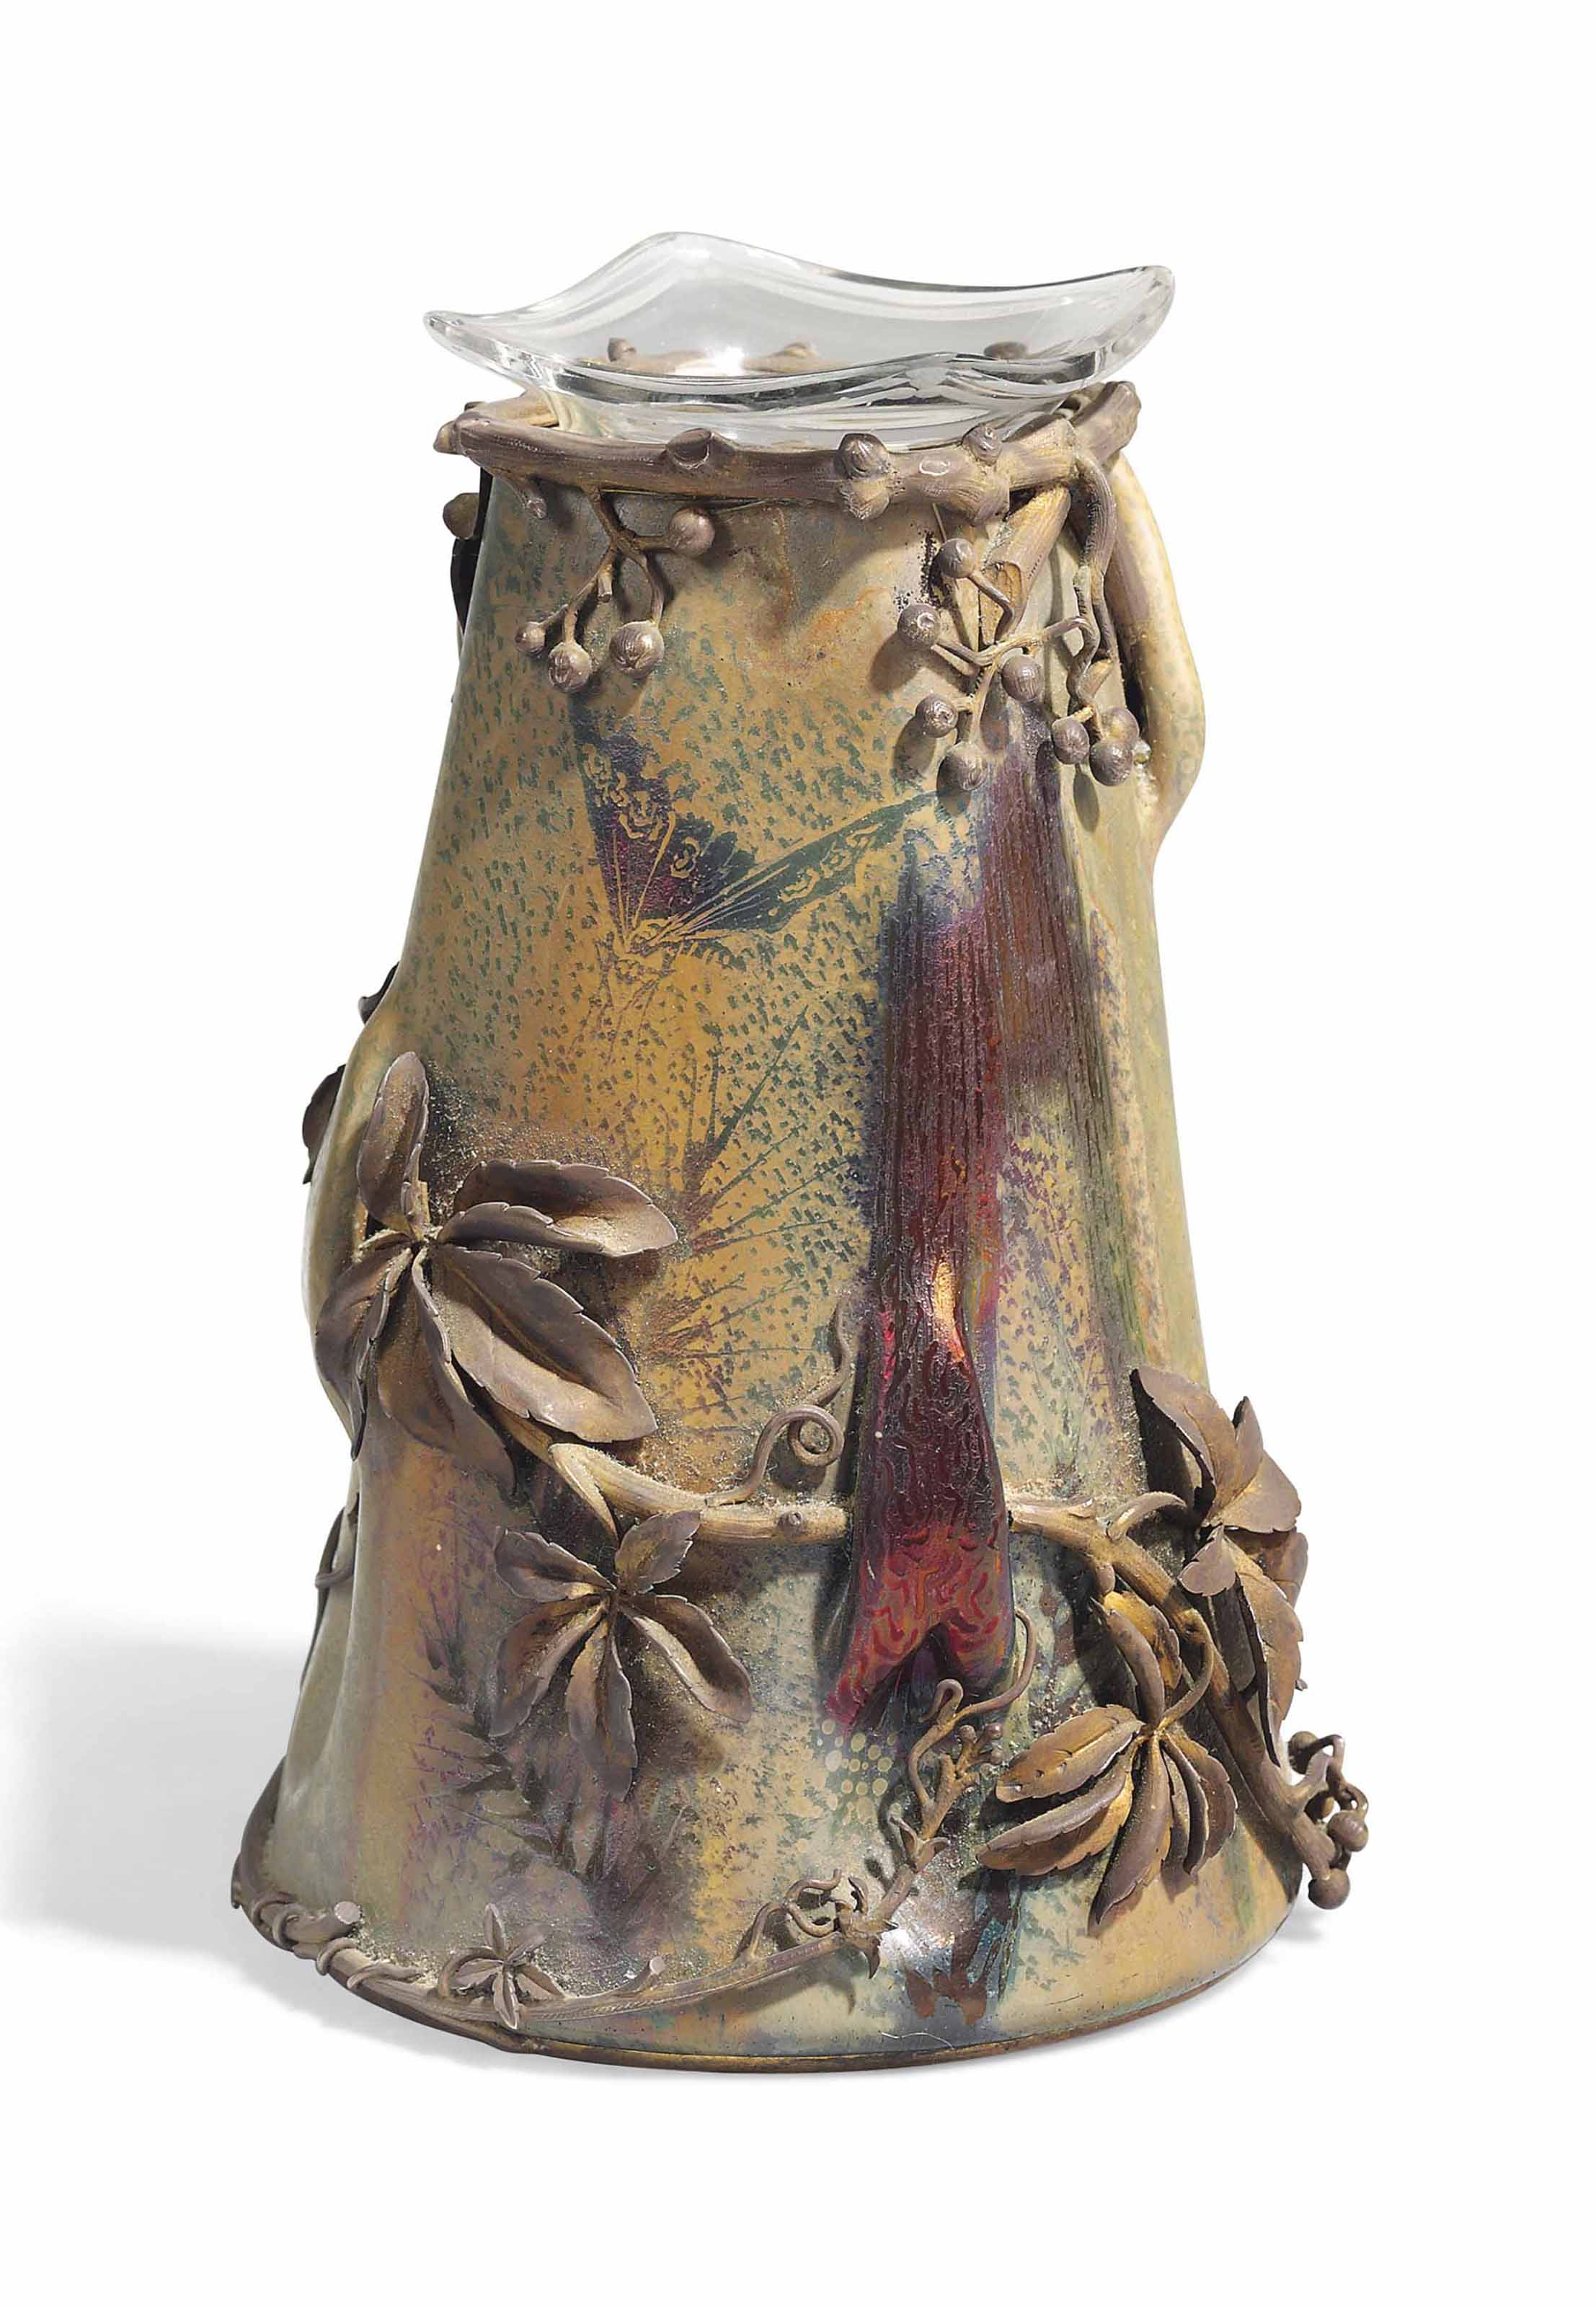 A CLÉMENT MASSIER ART NOUVEAU LUSTRE CERAMIC VASE WITH BRONZE MOUNTS